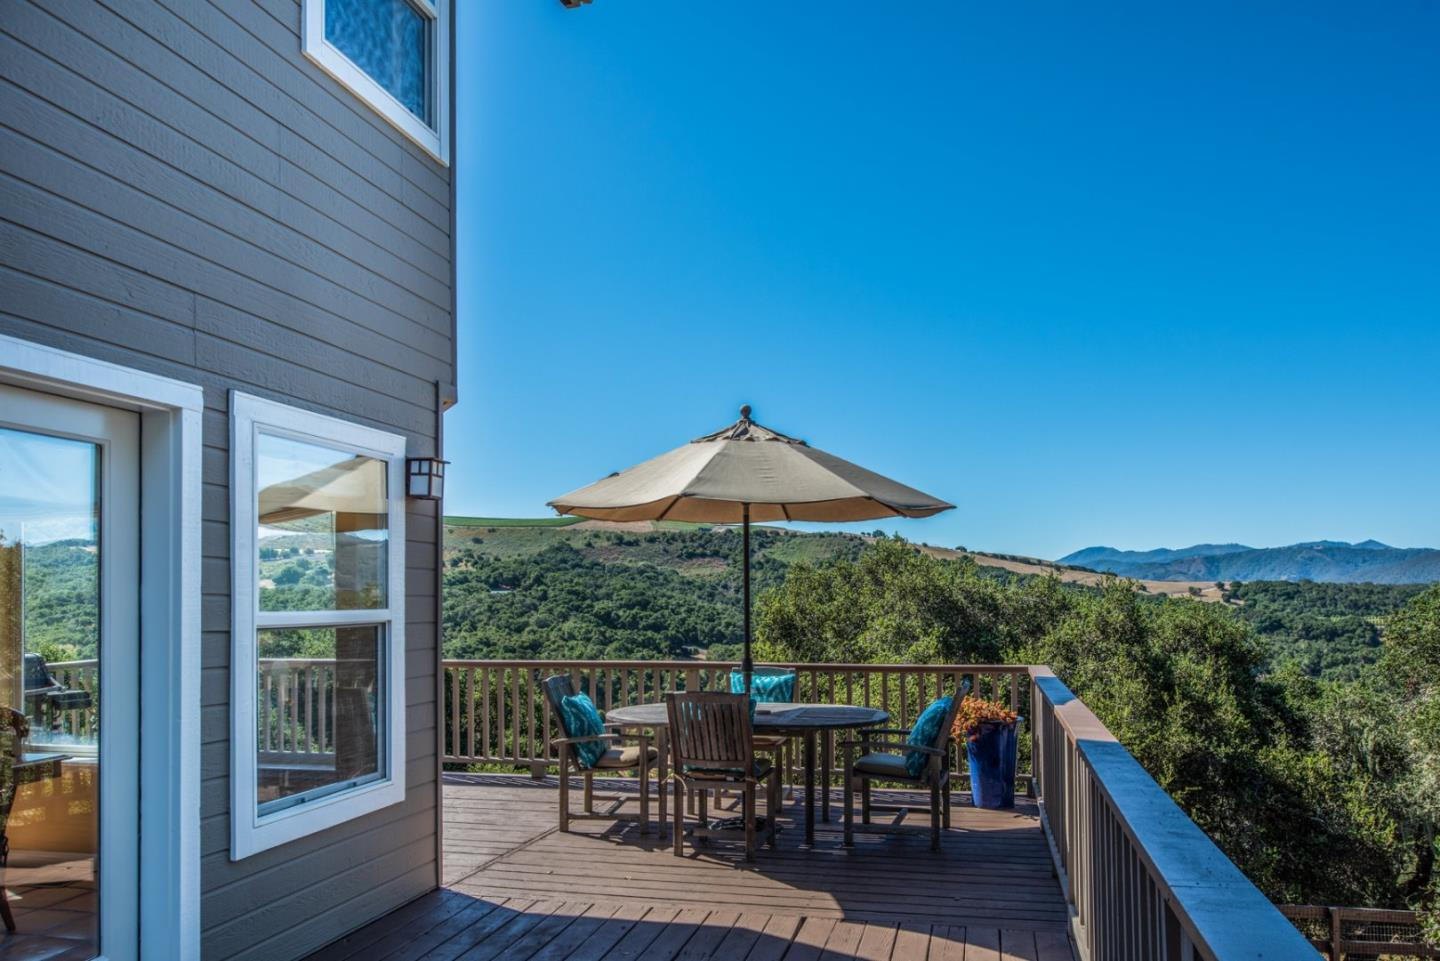 Property for sale at 11530 Hidden Hills RD, Carmel Valley,  CA 93924